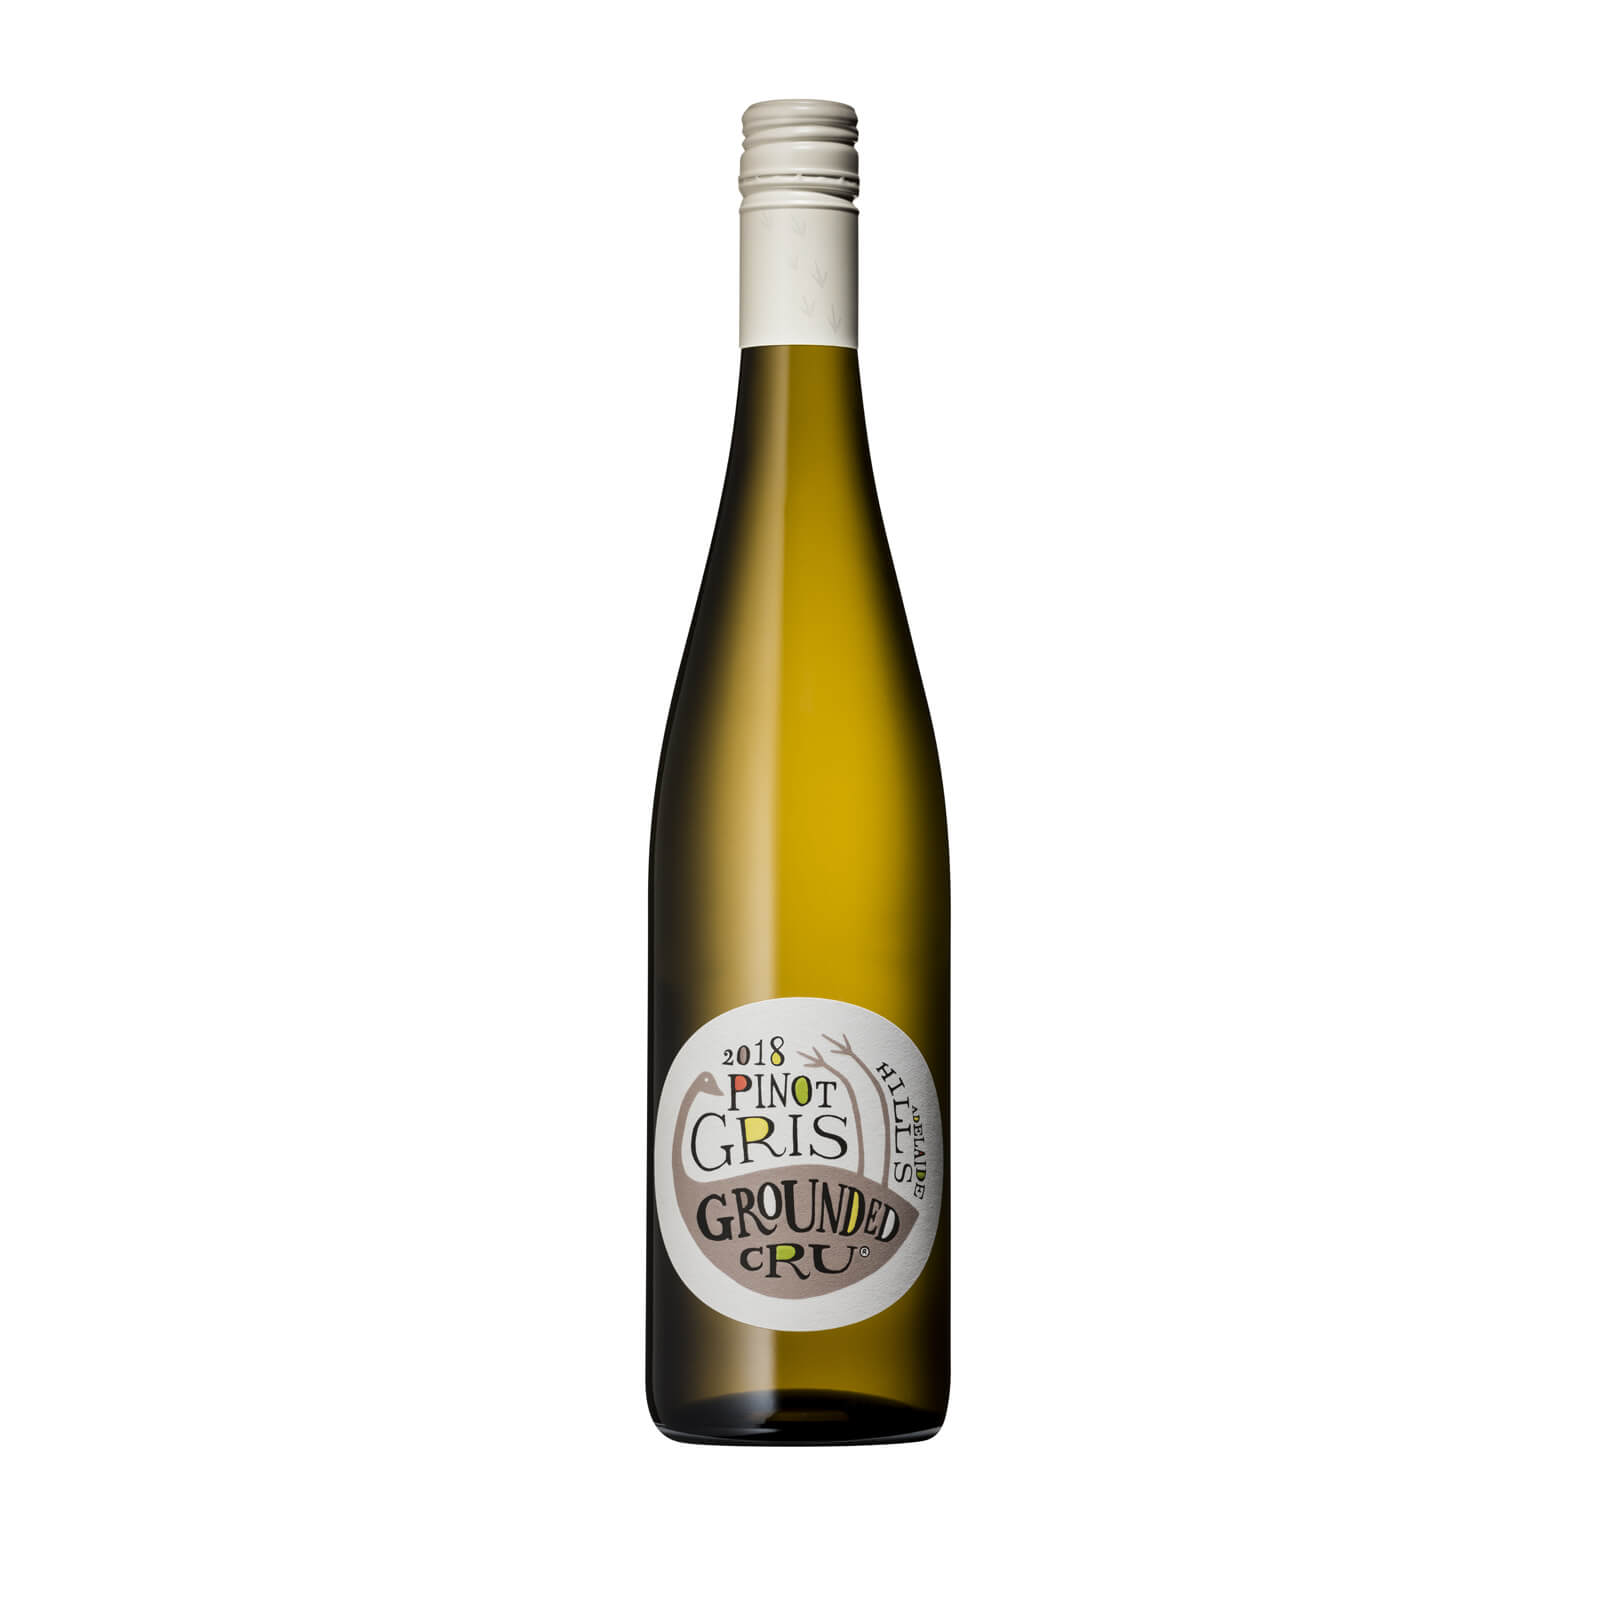 products-grounded-cru-adelaide-hills-pinot-gris-a